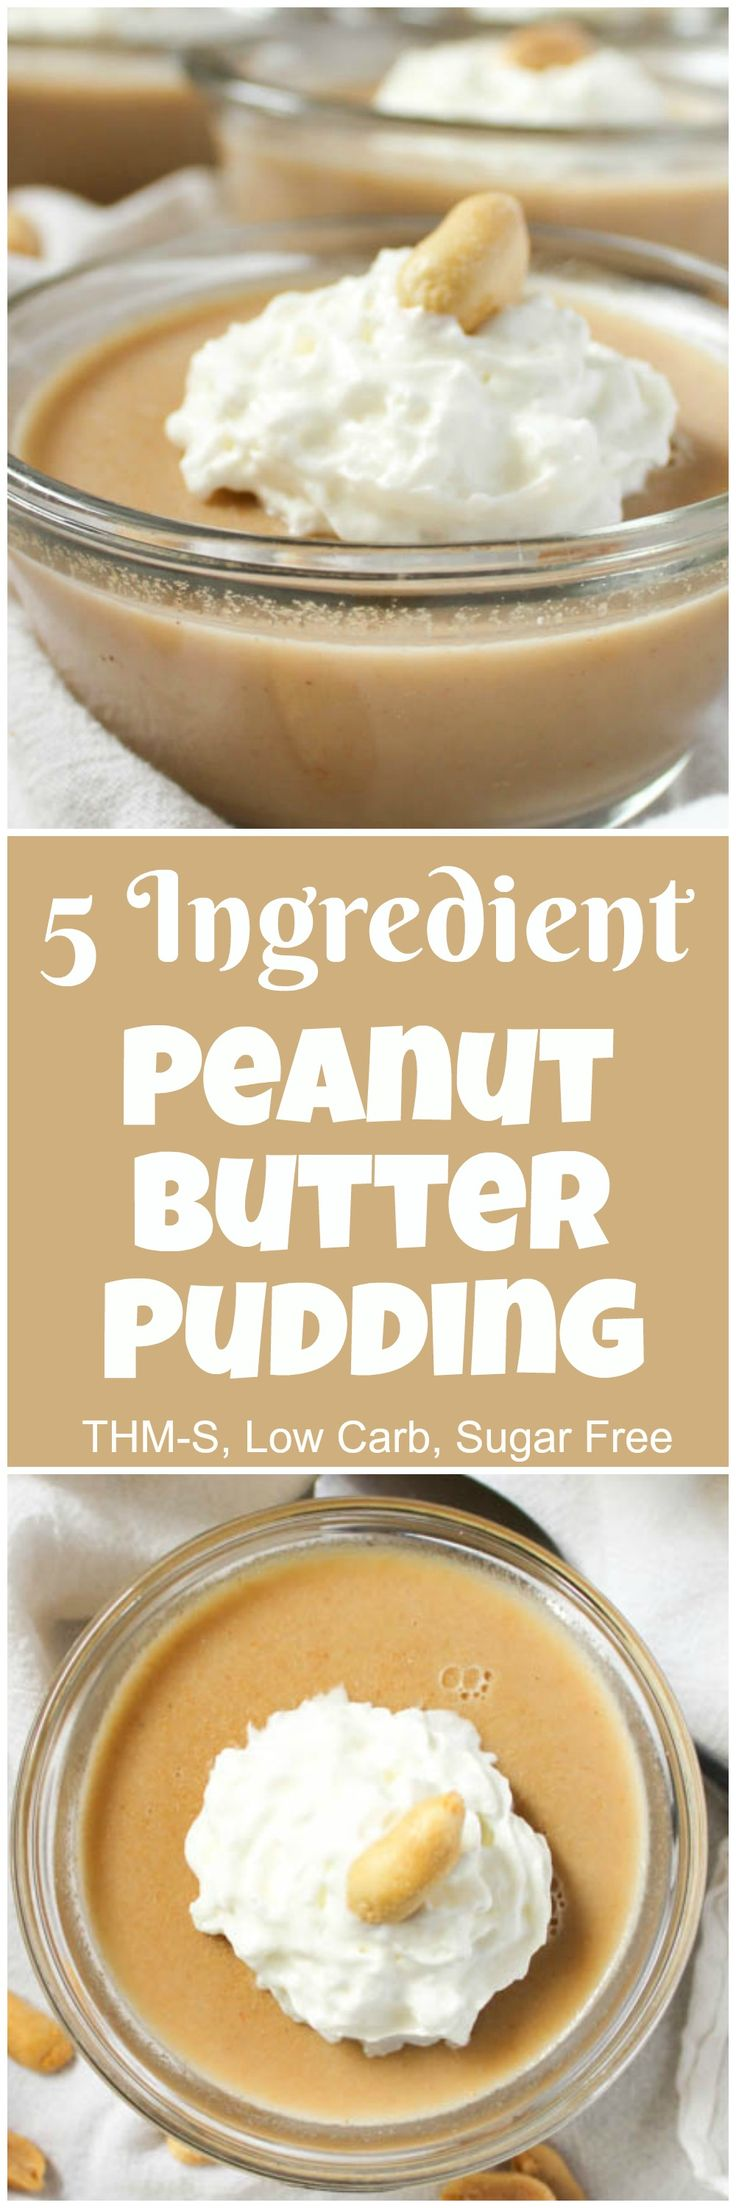 5 Ingredient Peanut Butter Pudding (THM-S, Low Carb, Sugar Free)